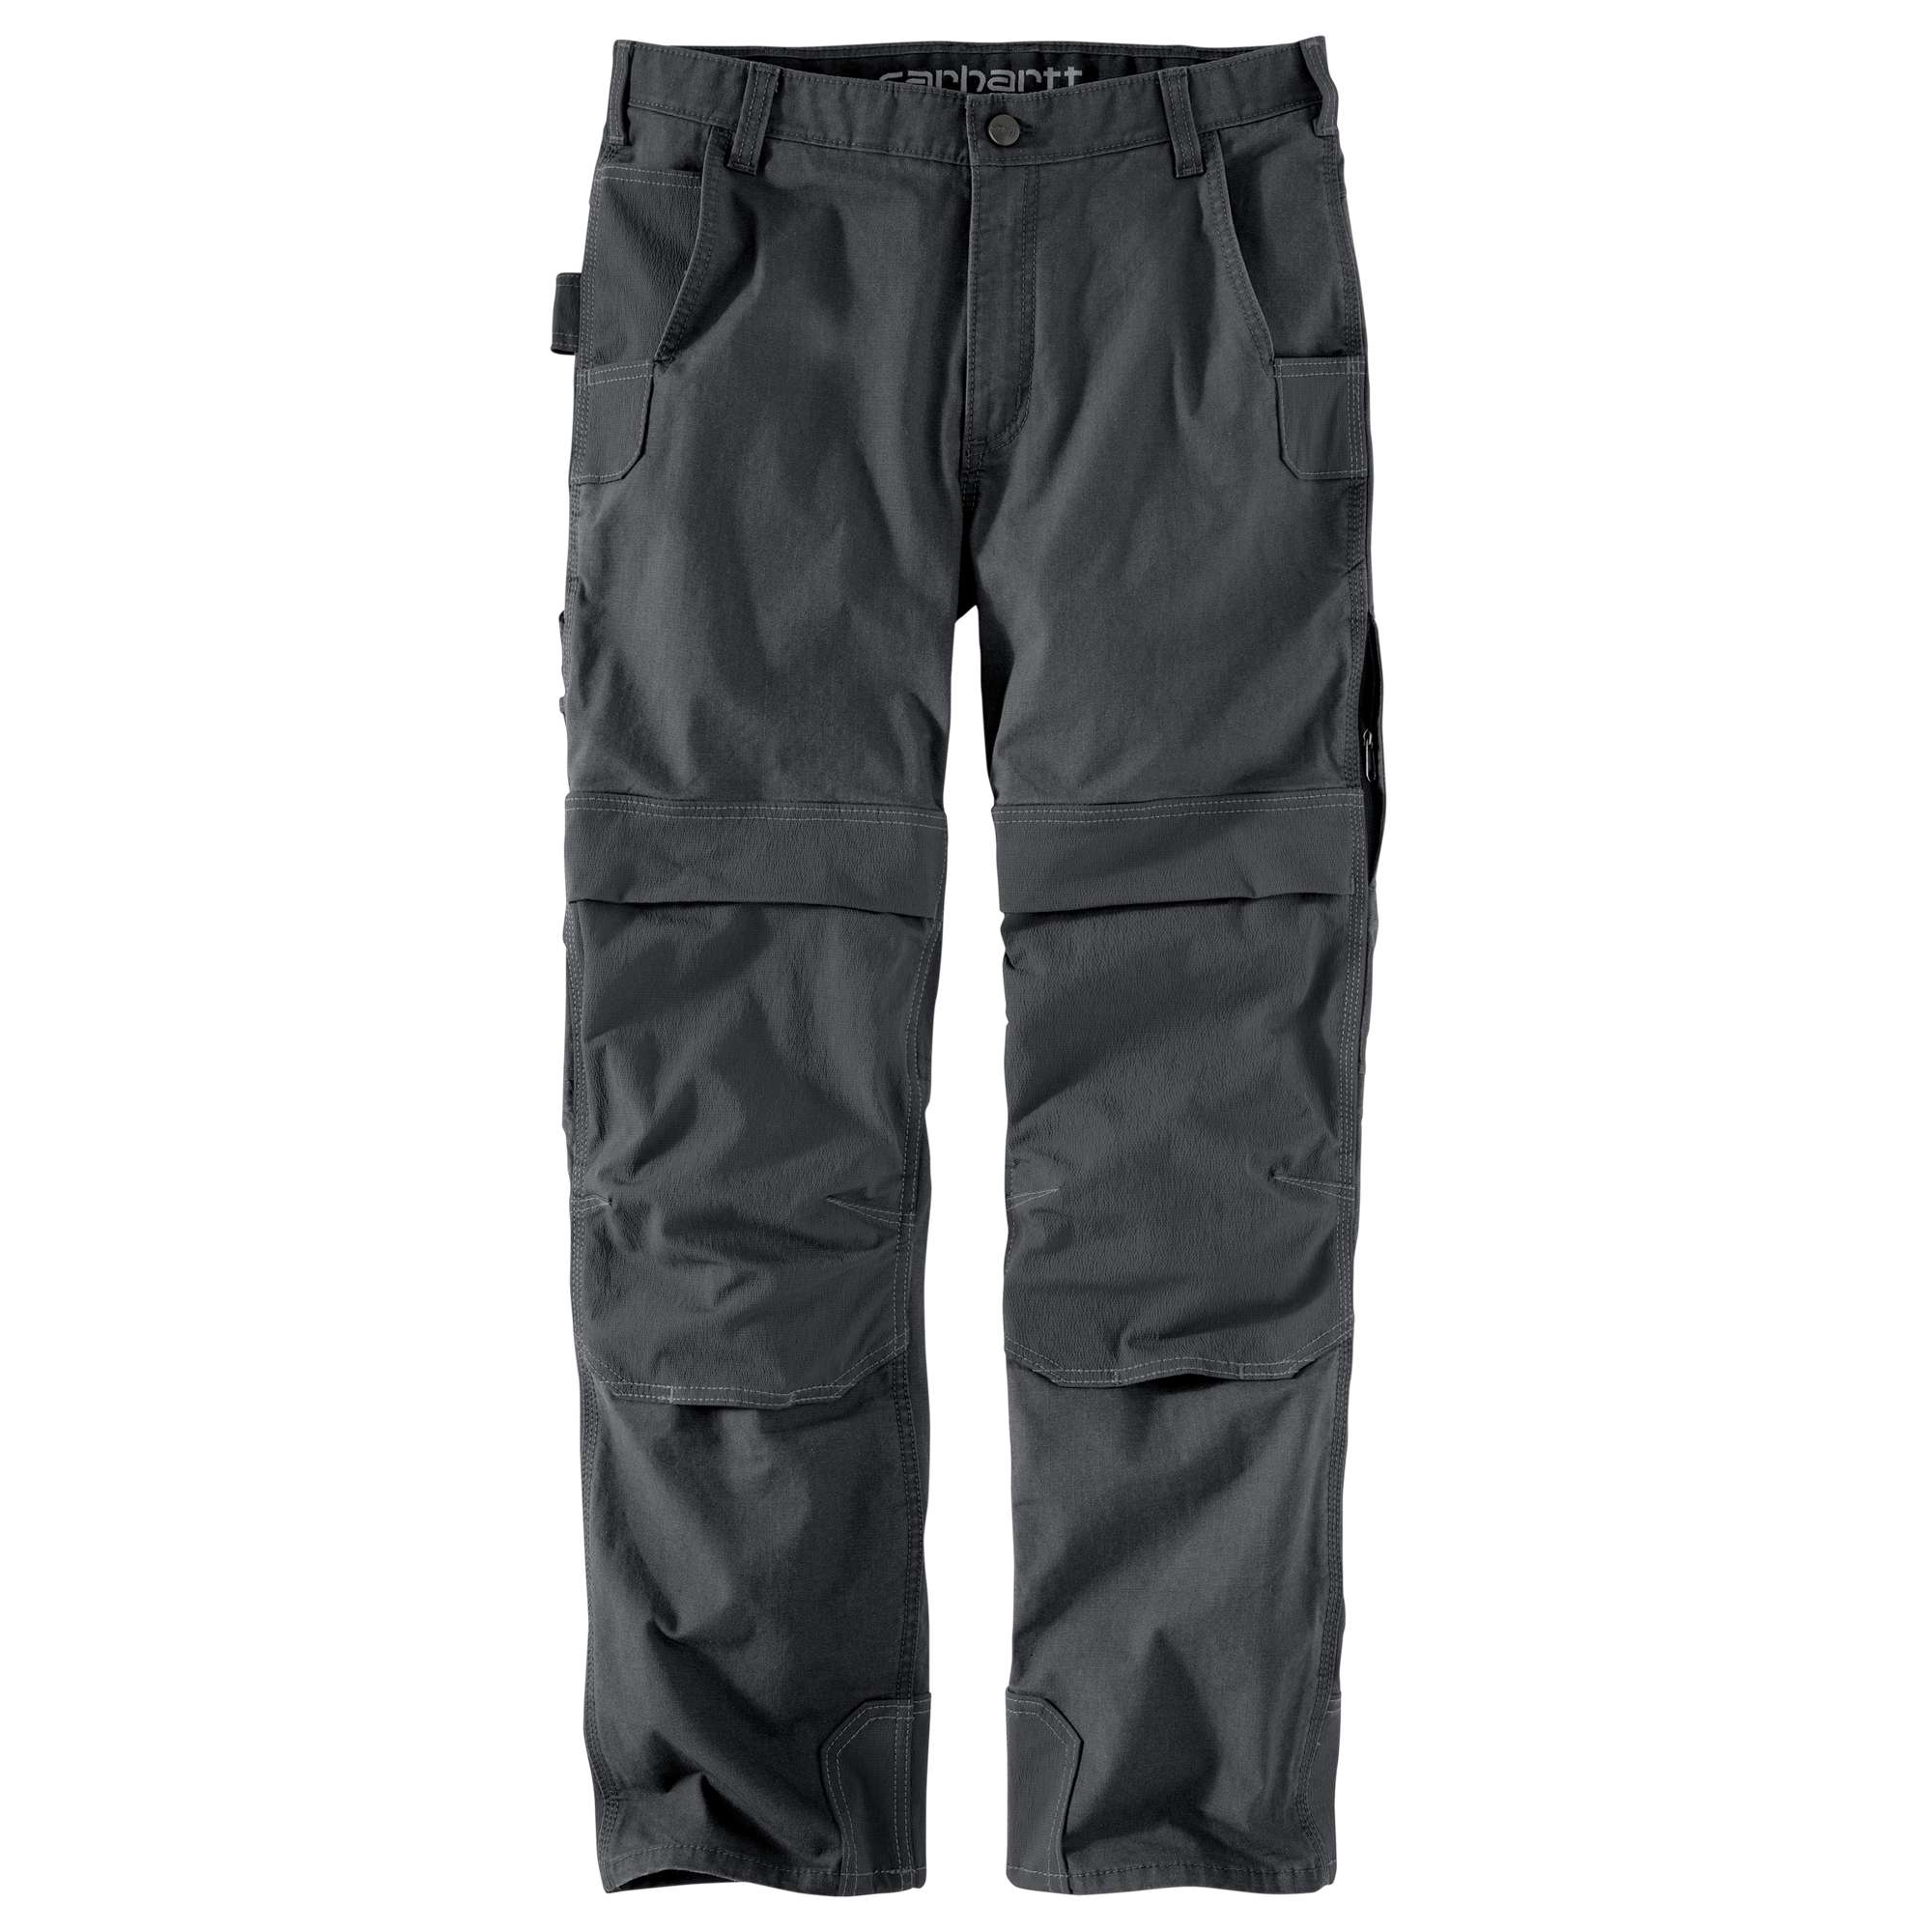 MEN'S FULL SWING® STEEL MULTI POCKET PANT